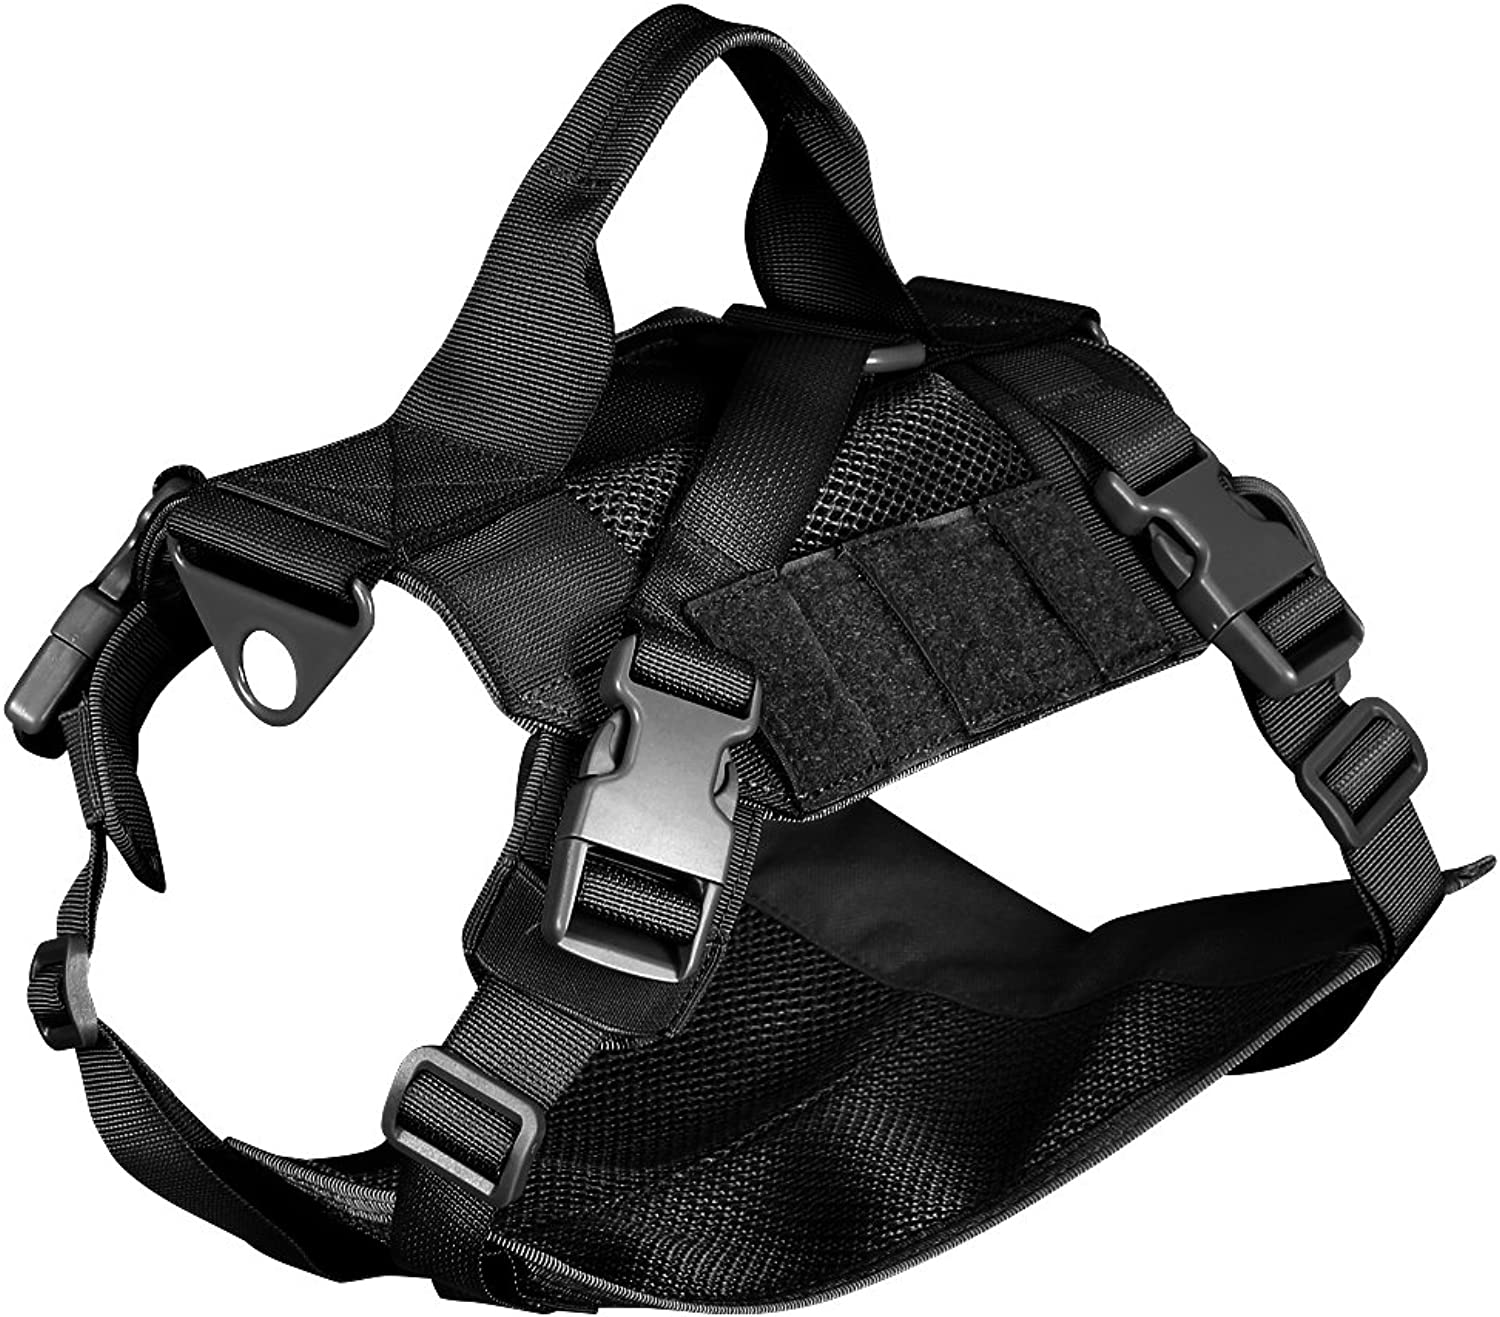 Outry Tactical Dog Training Vest, NoPull Harness, One Size Fits Most  Black